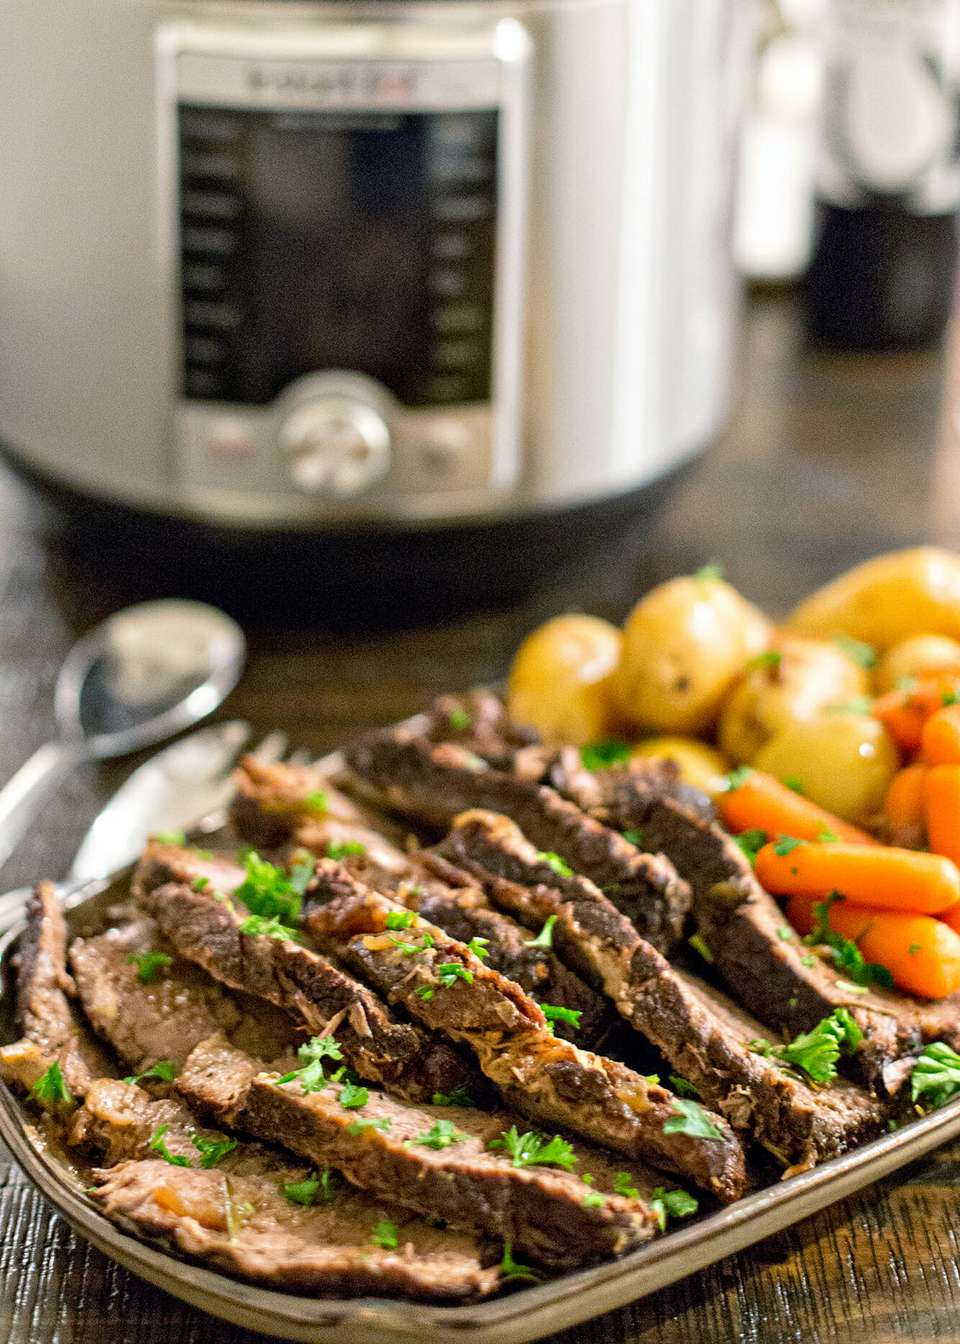 Sliced roast beef, cooked carrots, and cooked potatoes for instant pot pot roast